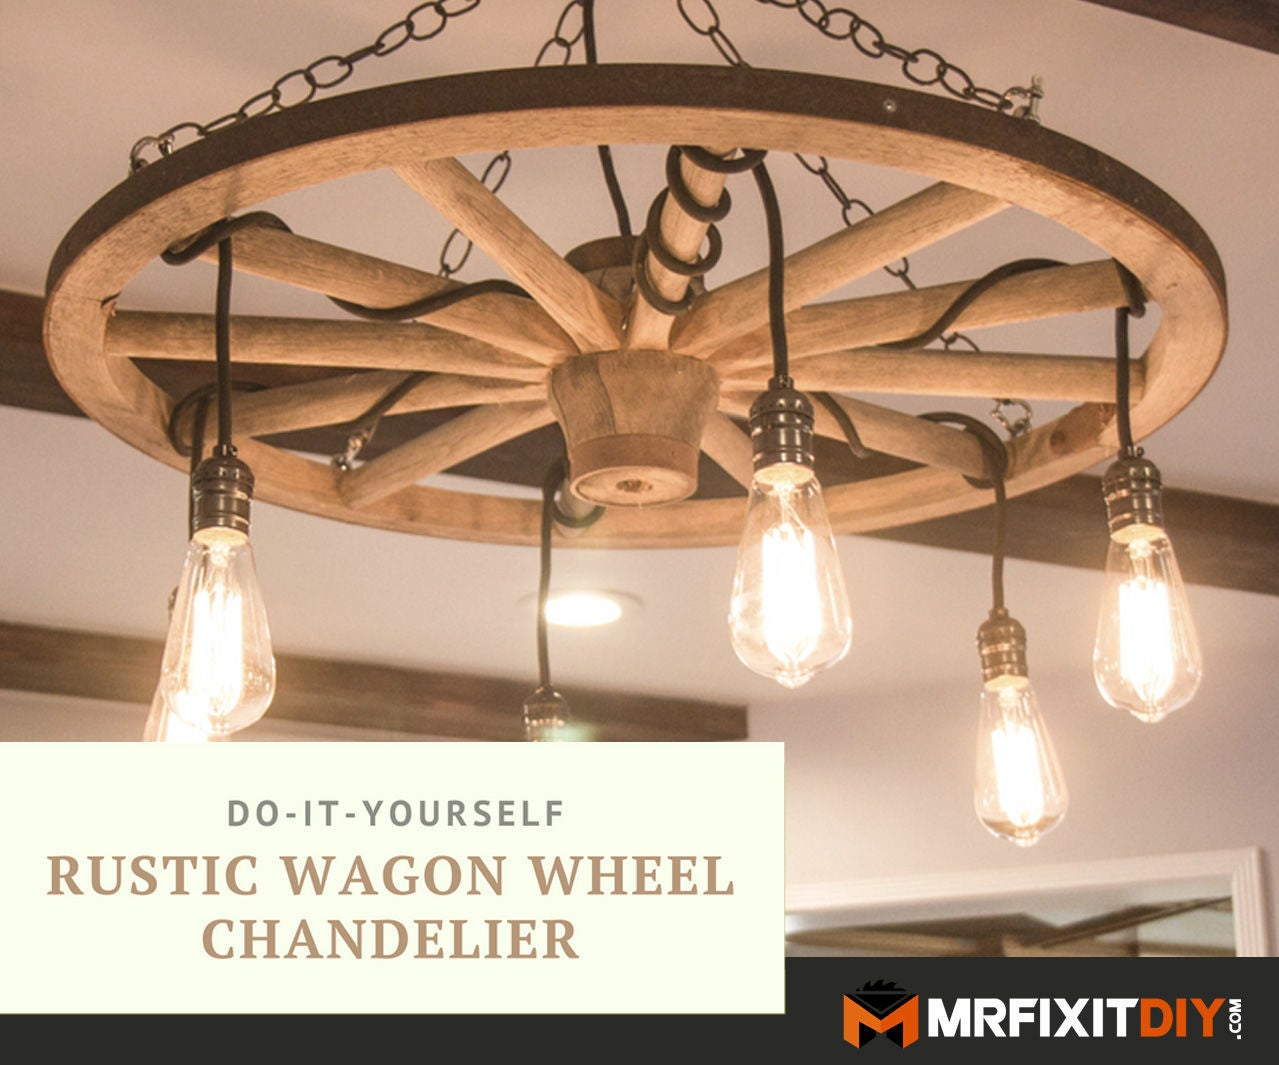 Diy wagon wheel chandelier 5 steps with pictures